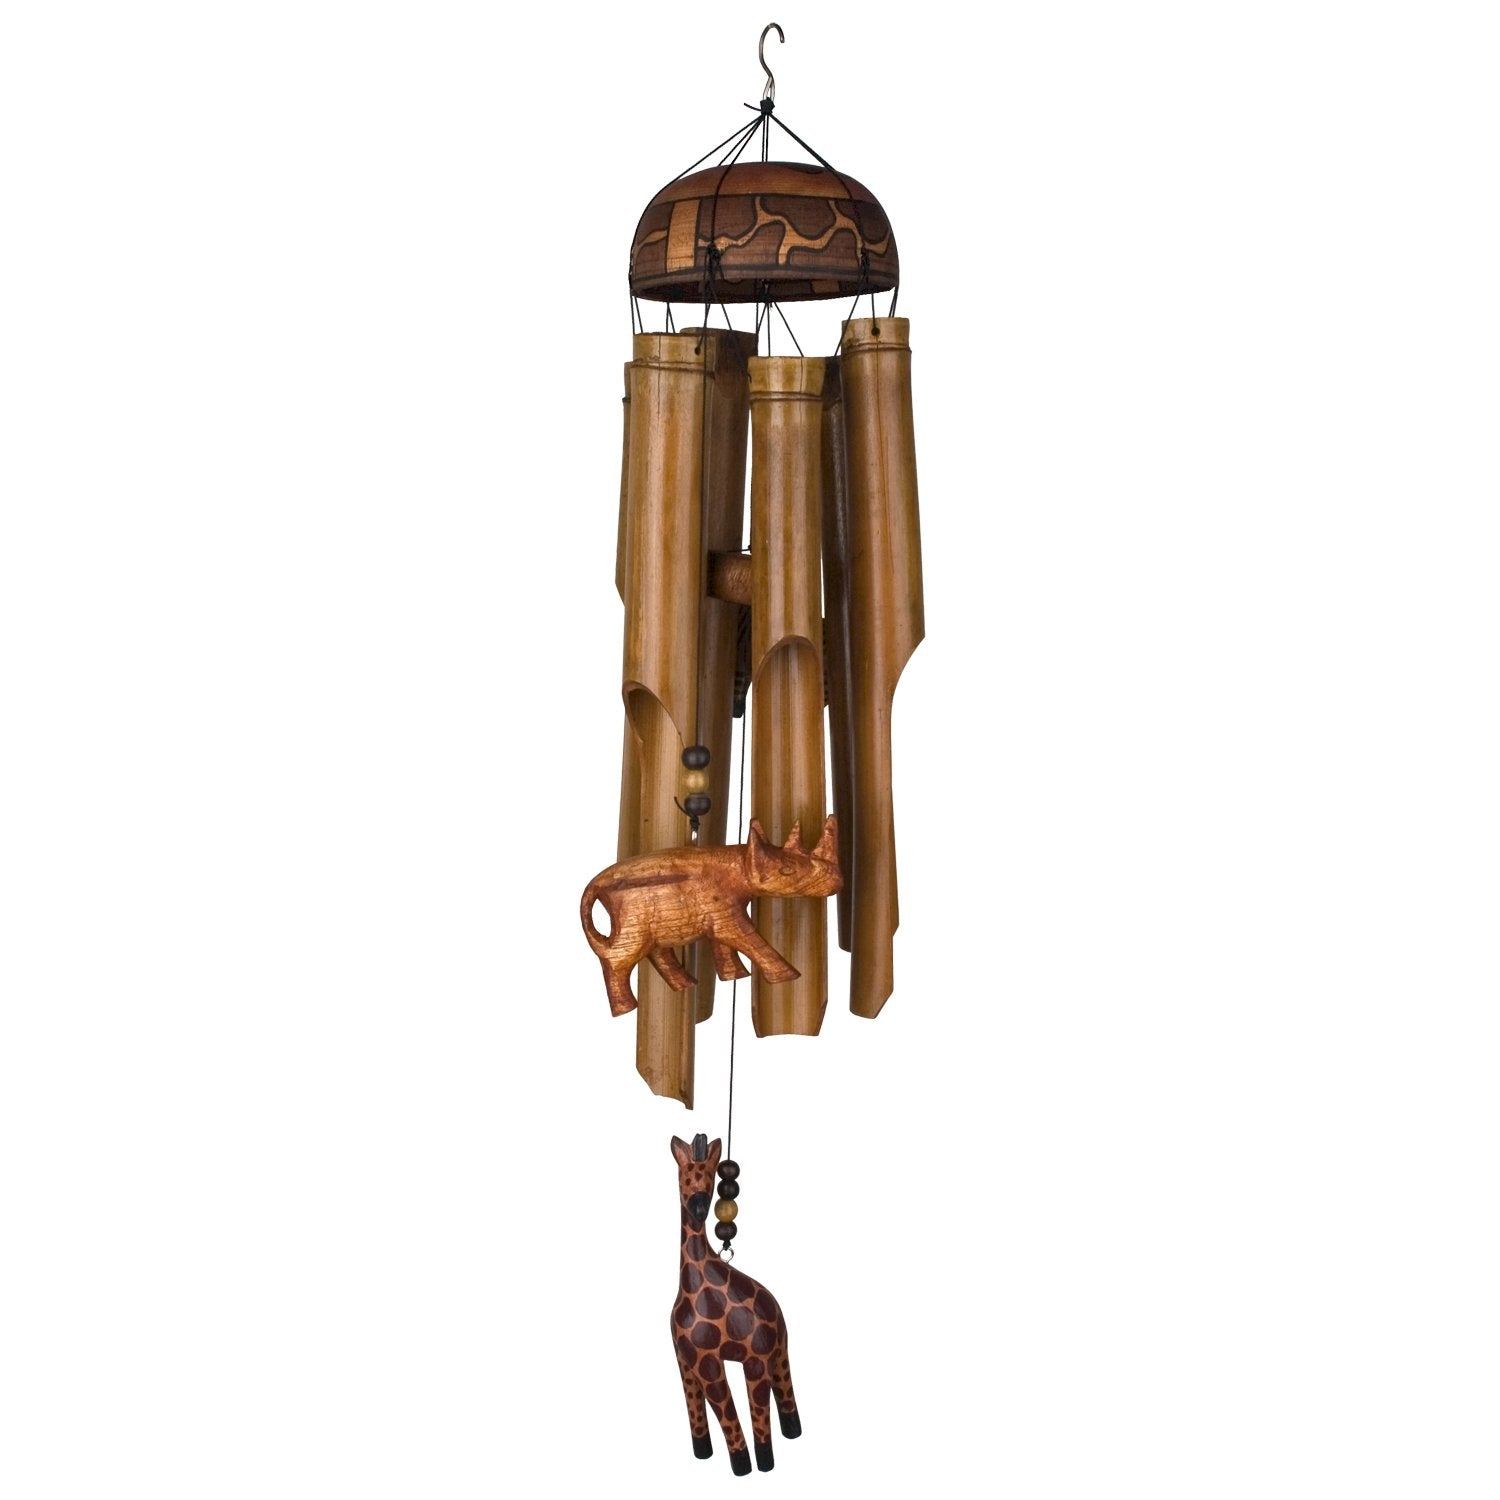 African Trio Bamboo Chime full product image